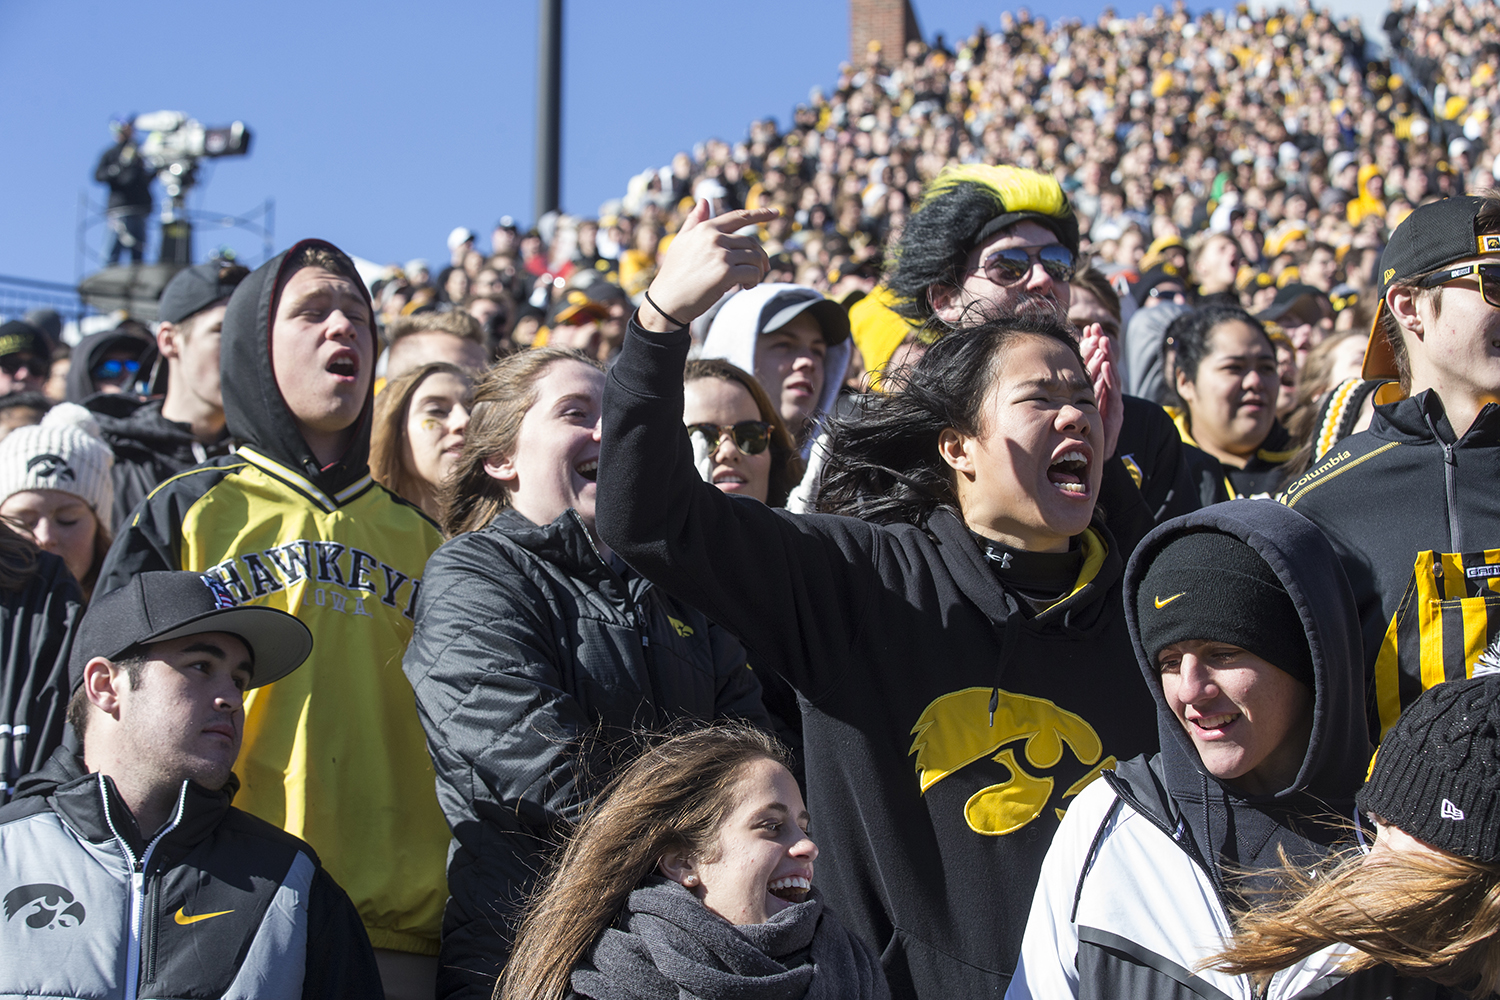 Fans spectate during the Iowa vs. Maryland game at Kinnick Stadium on Saturday Oct. 20, 2018. The Hawkeyes defeated the Terrapins 23-0.